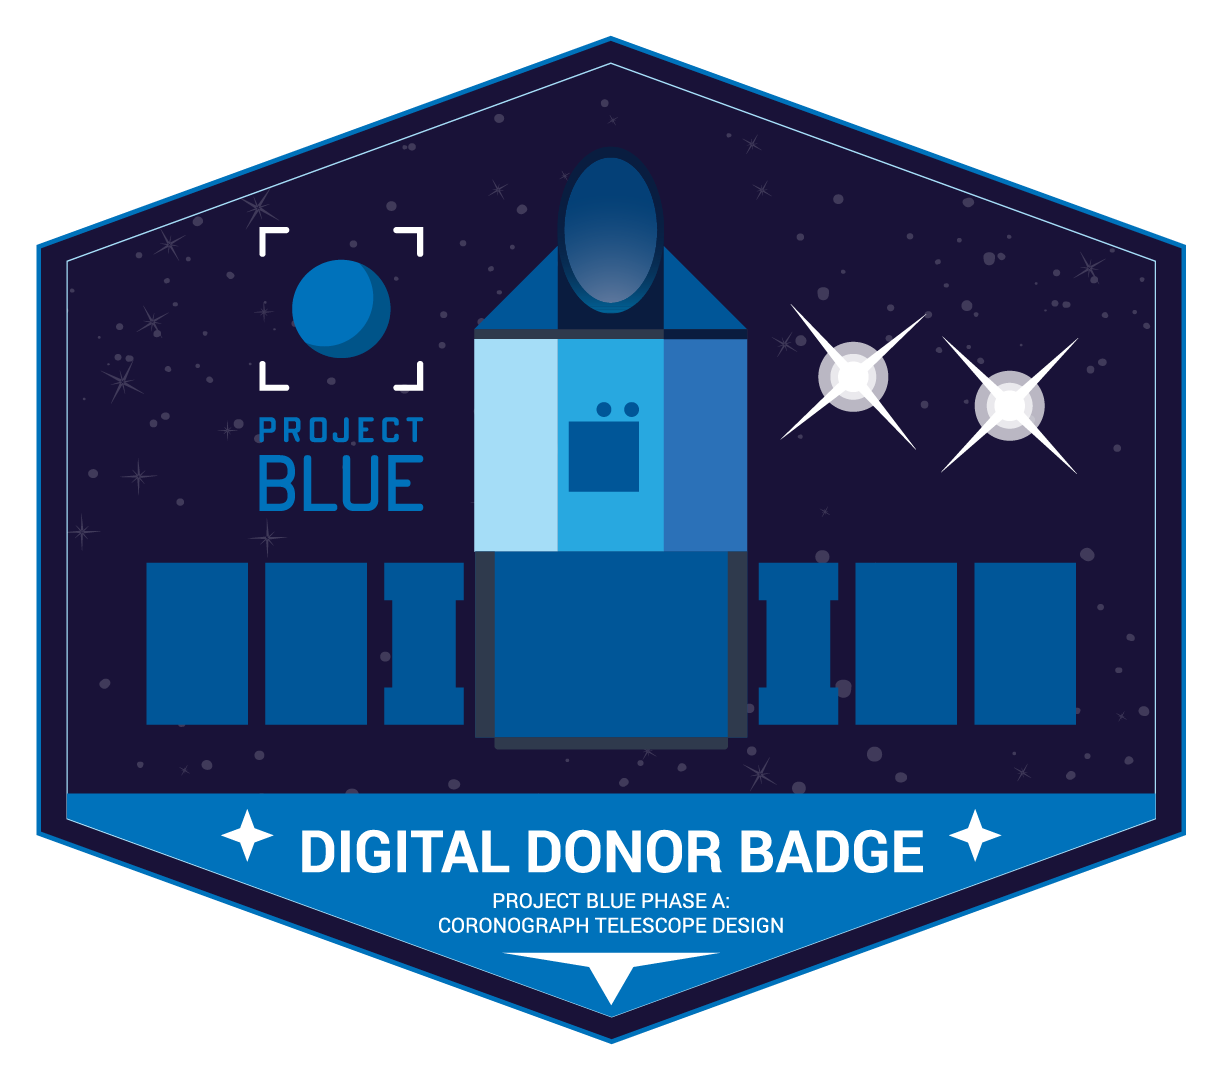 Project Blue Digital Donor Badge